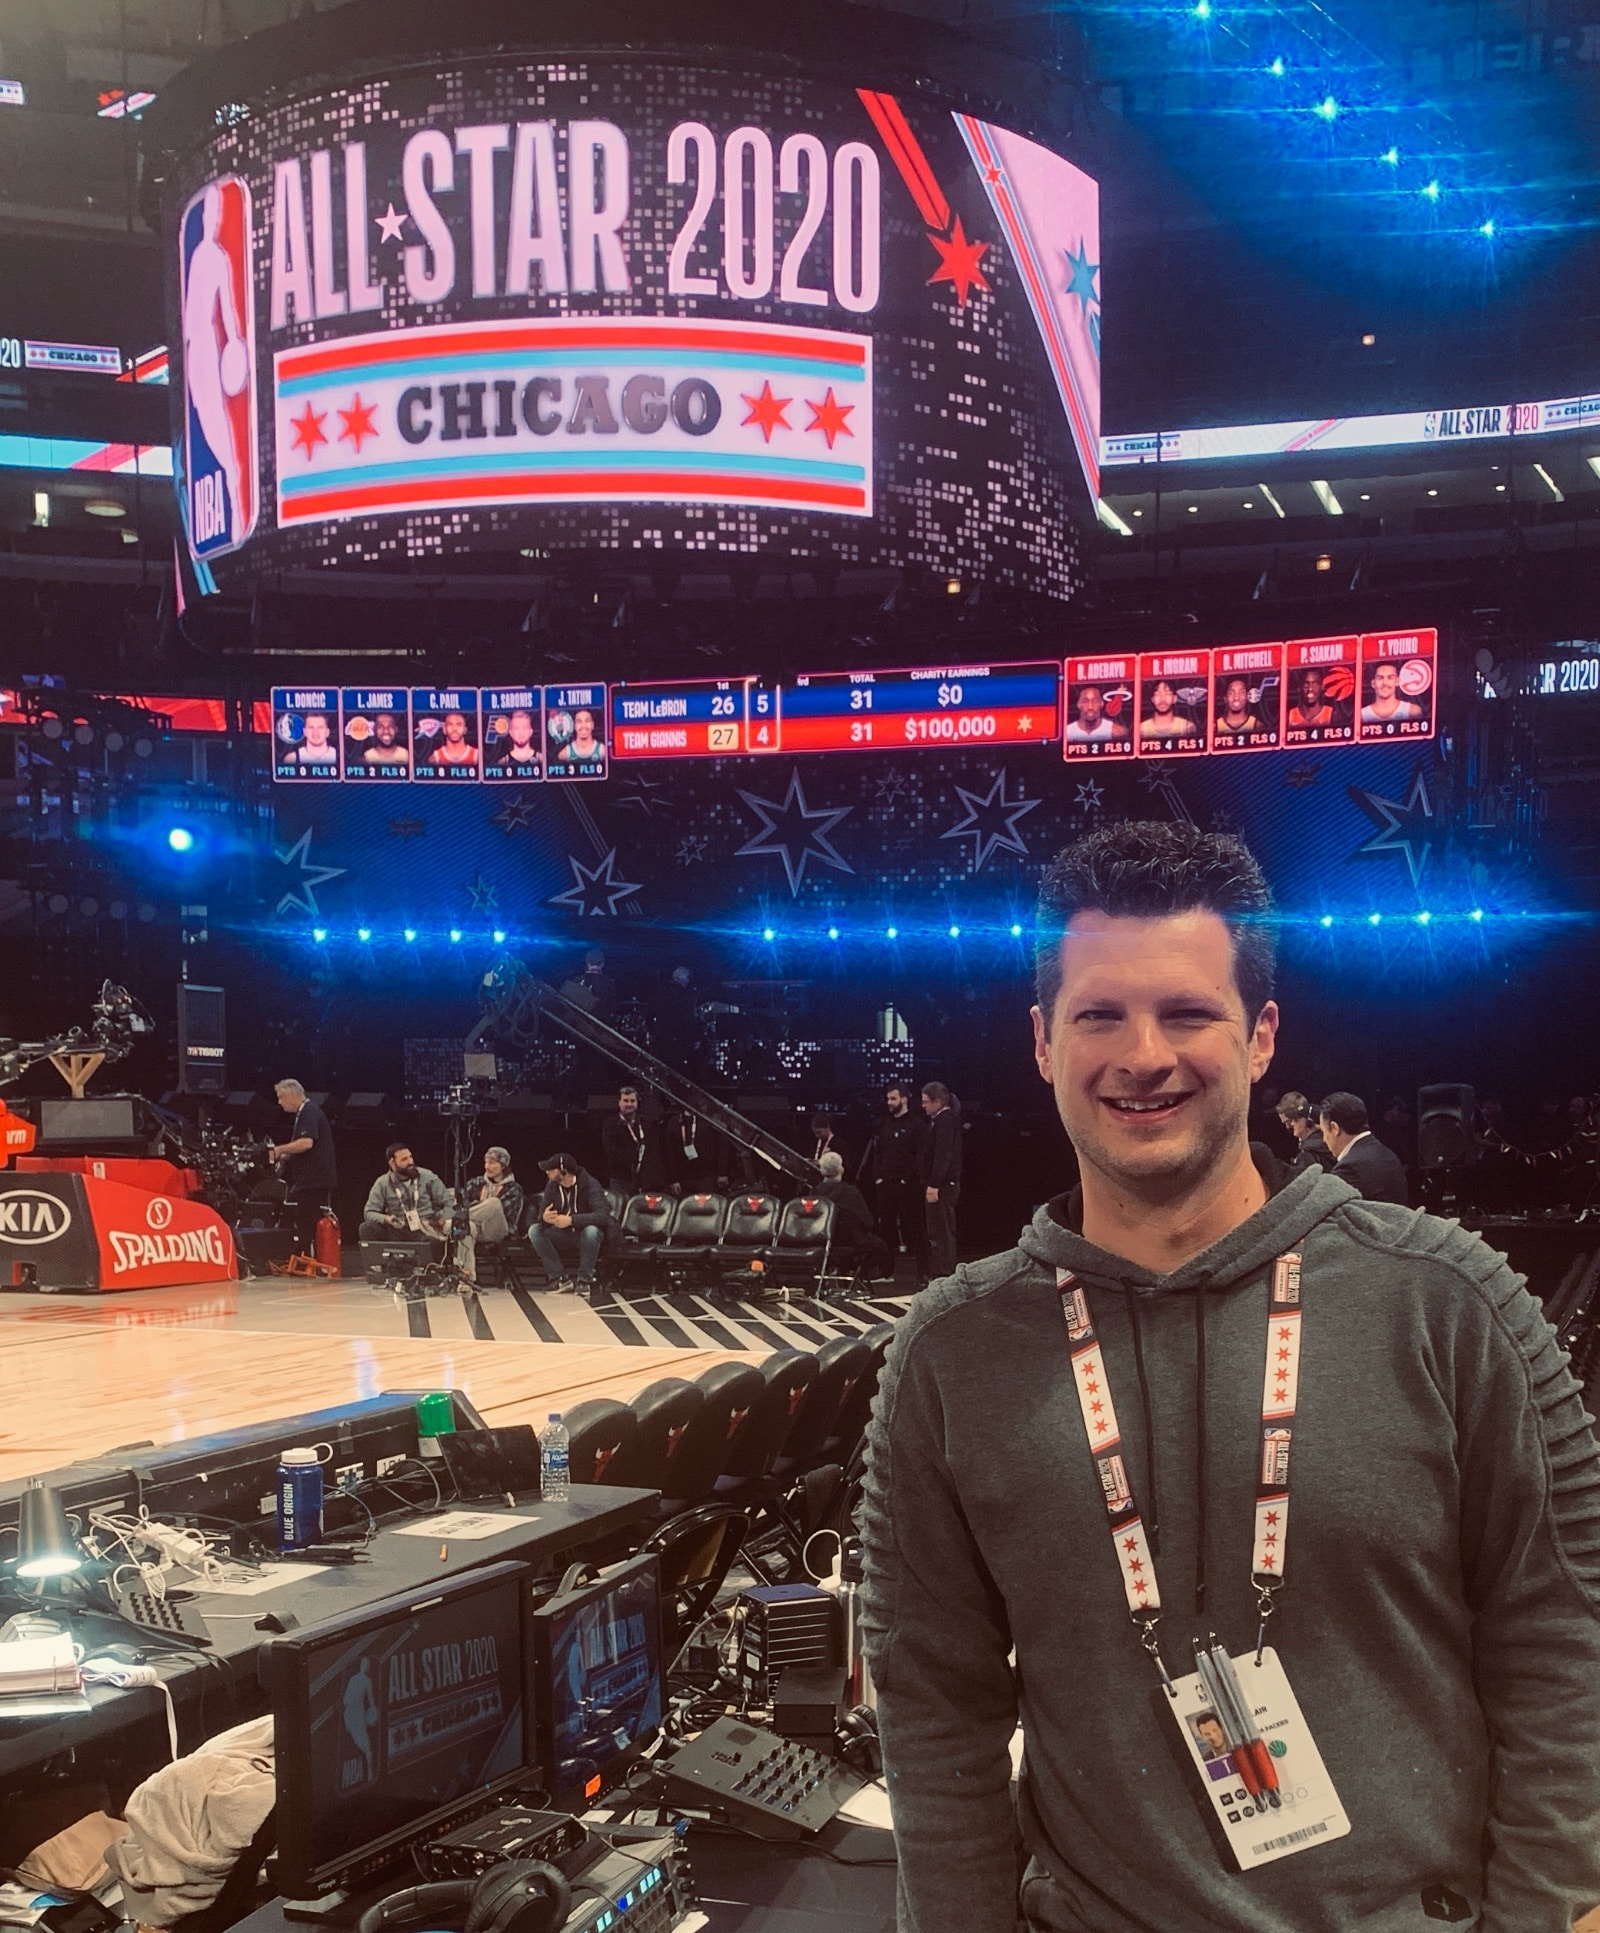 Sinclair at the 2020 NBA All-Star Game in Chicago